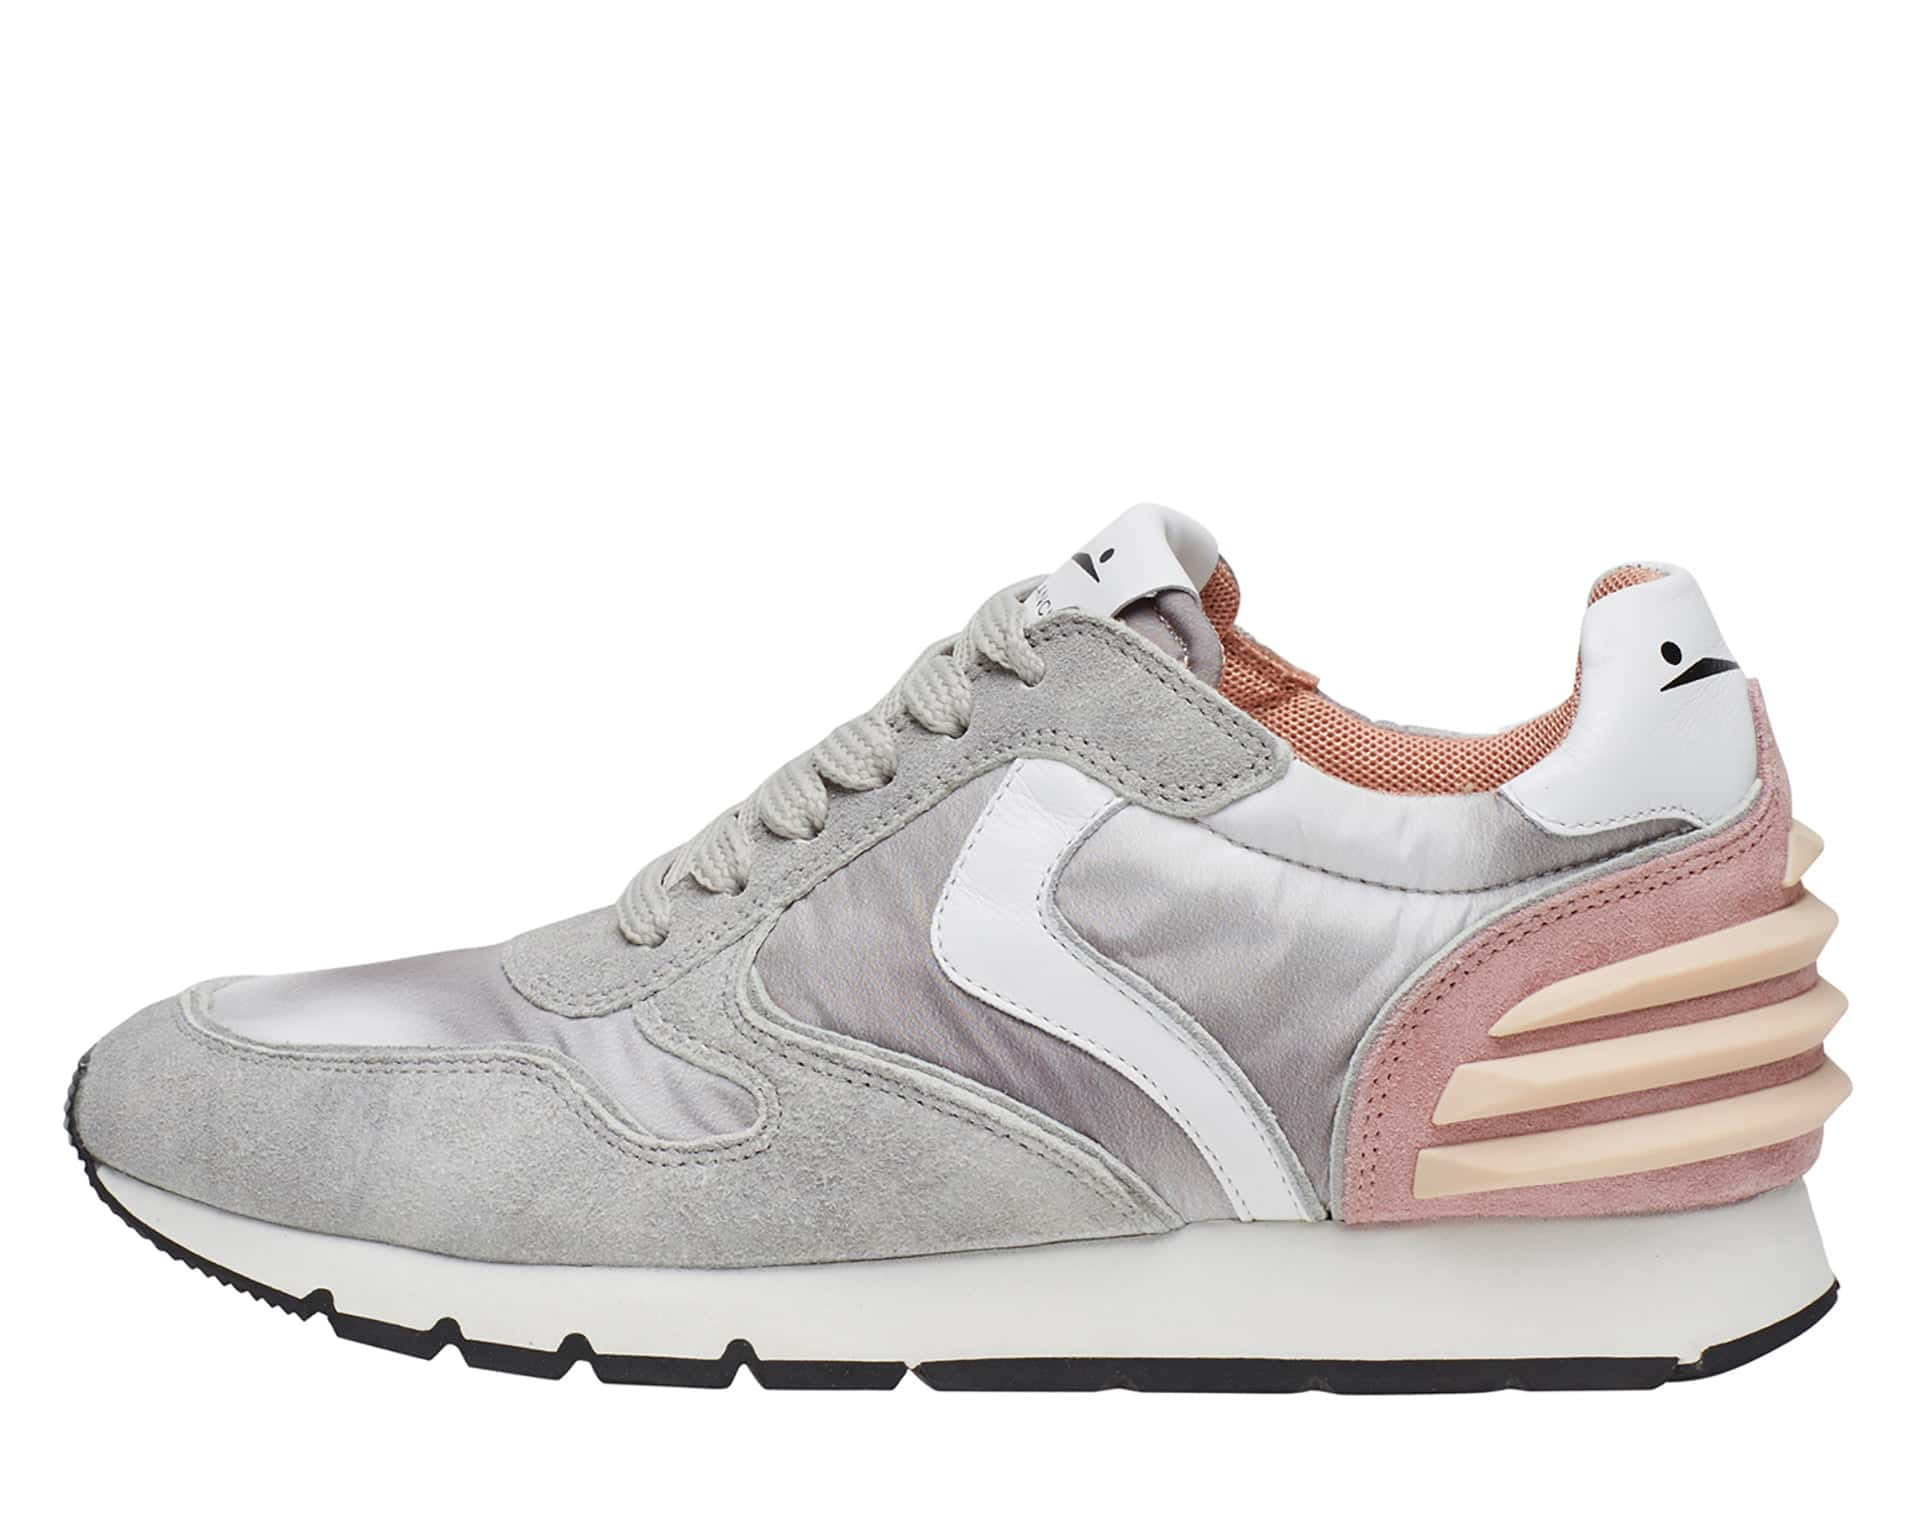 JULIA POWER - Leather and nylon sneakers - Ice Grey/Grey/Pink